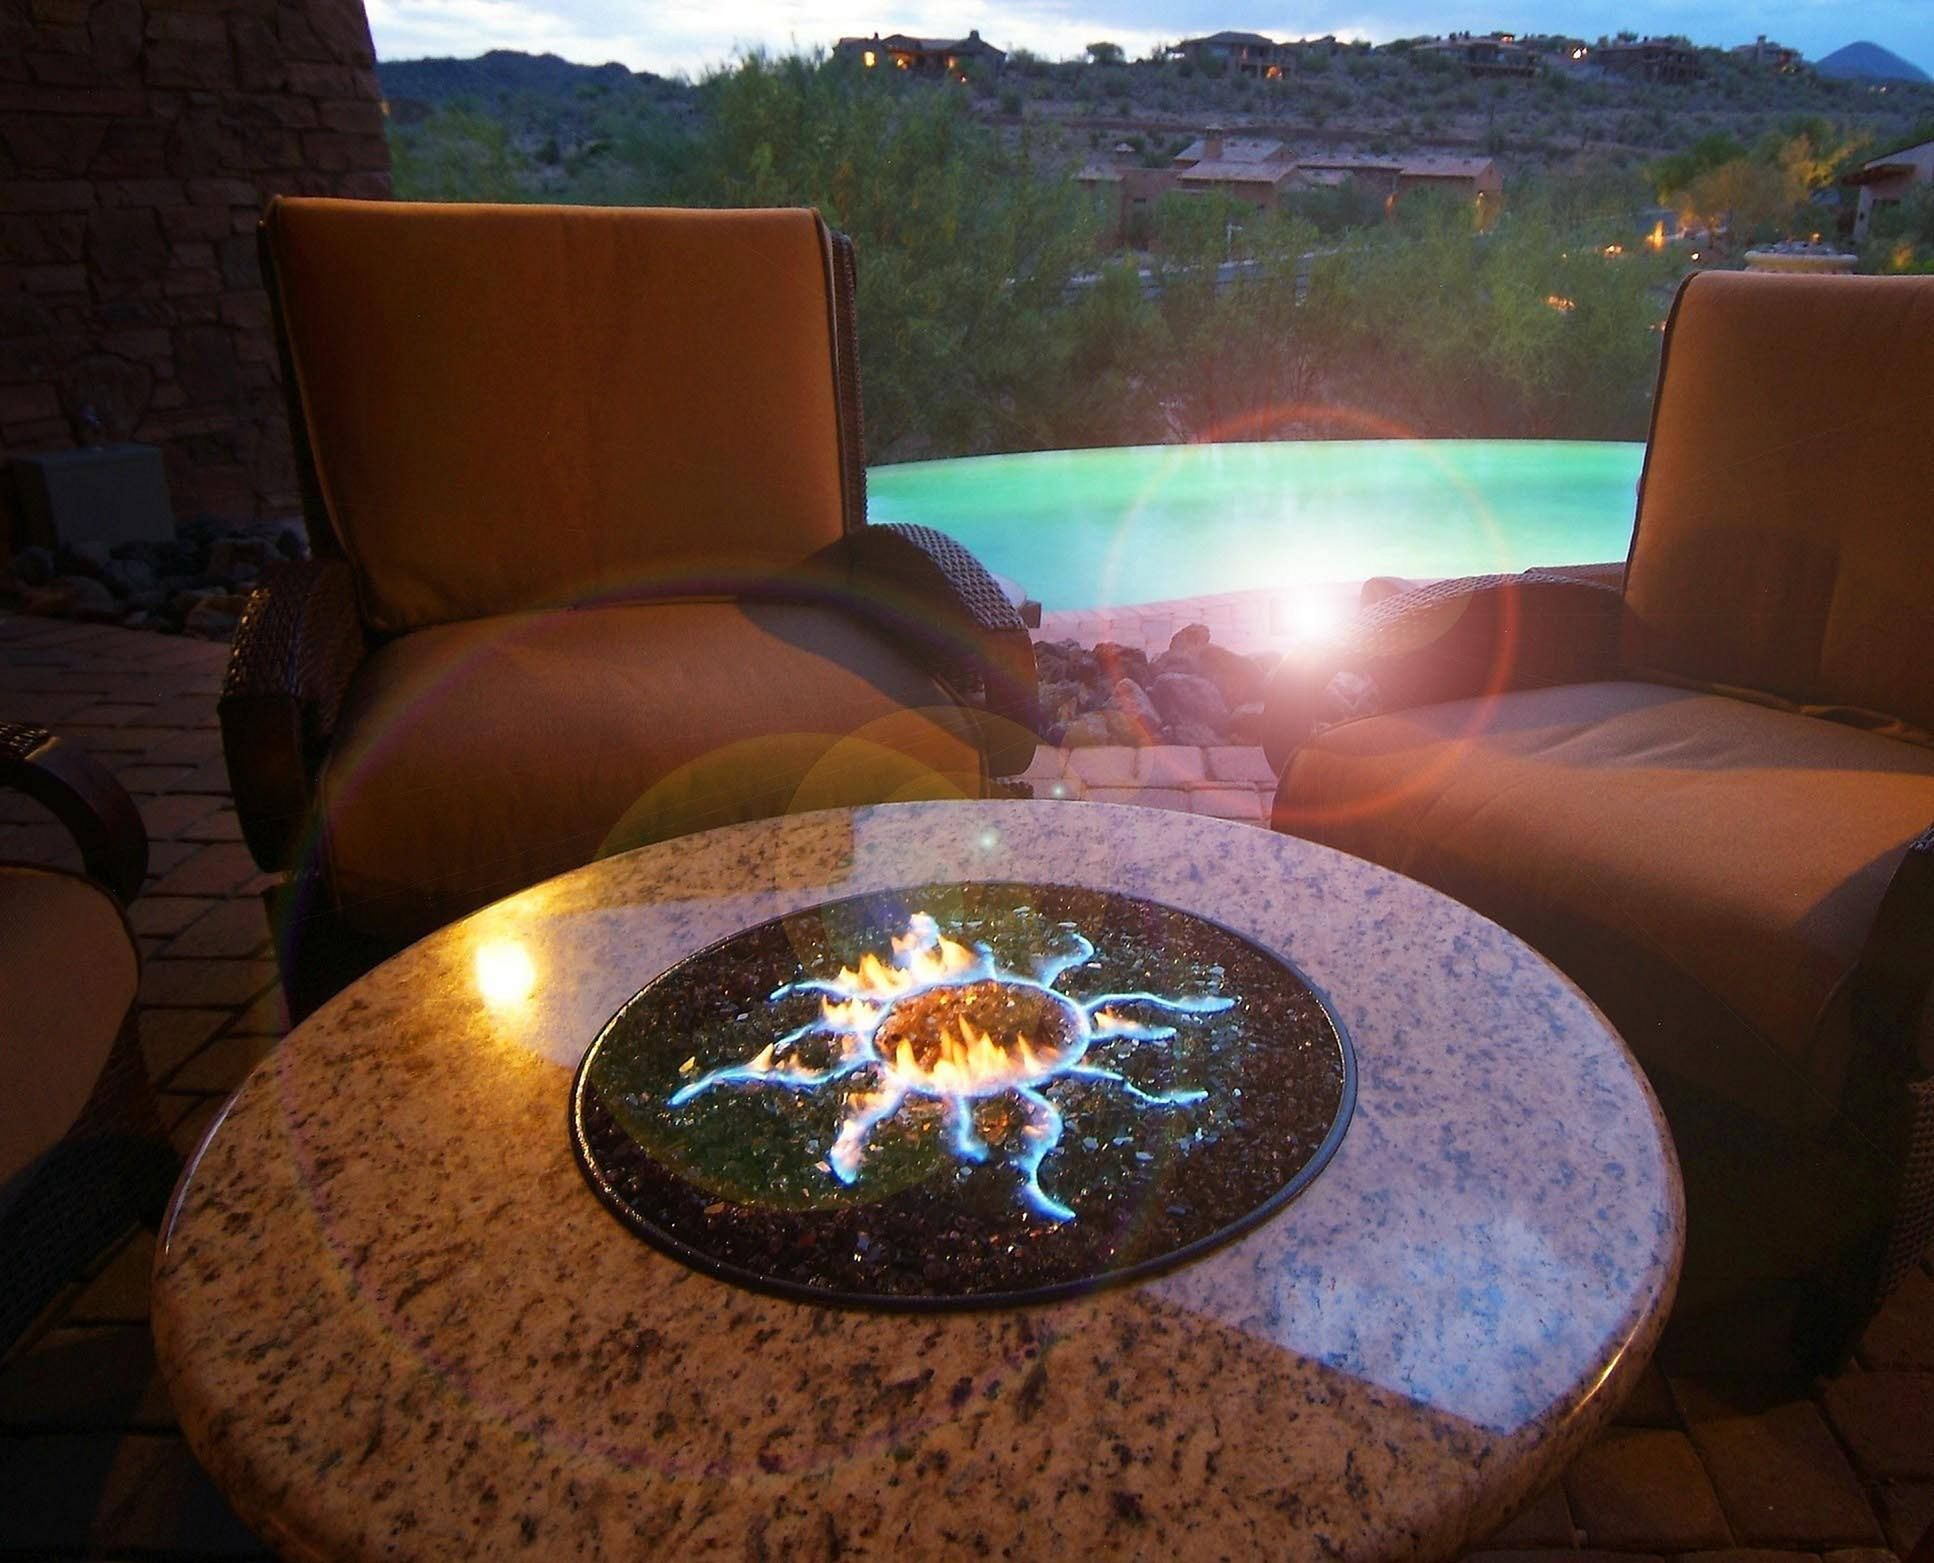 Outstanding 24 Beautiful Backyard Design With Awesome Fire Pit Ideas To Gather With Your Family https://24spaces.com/outdoor/24-beautiful-backyard-design-with-awesome-fire-pit-ideas-to-gather-with-your-family/